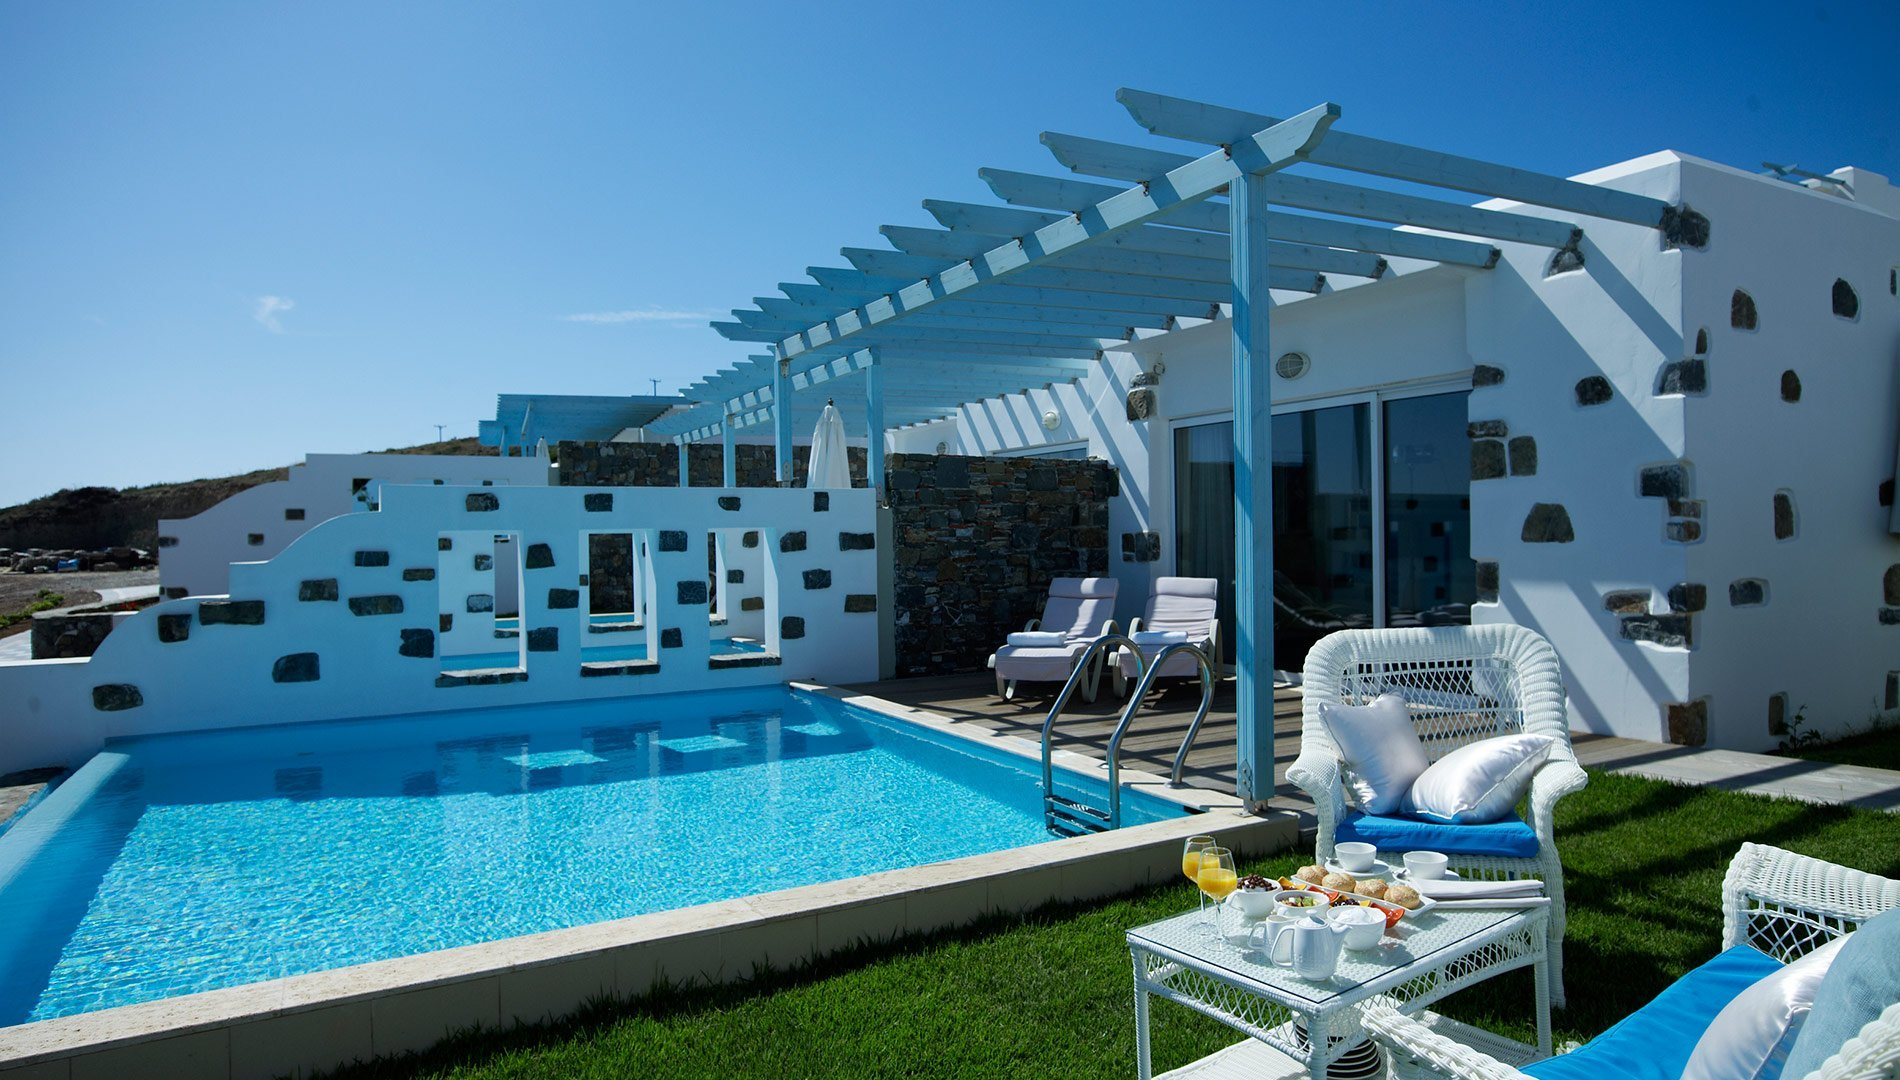 Atrium prestige rodi grecia junior bungalow vista mare - Hotel con piscina in camera ...